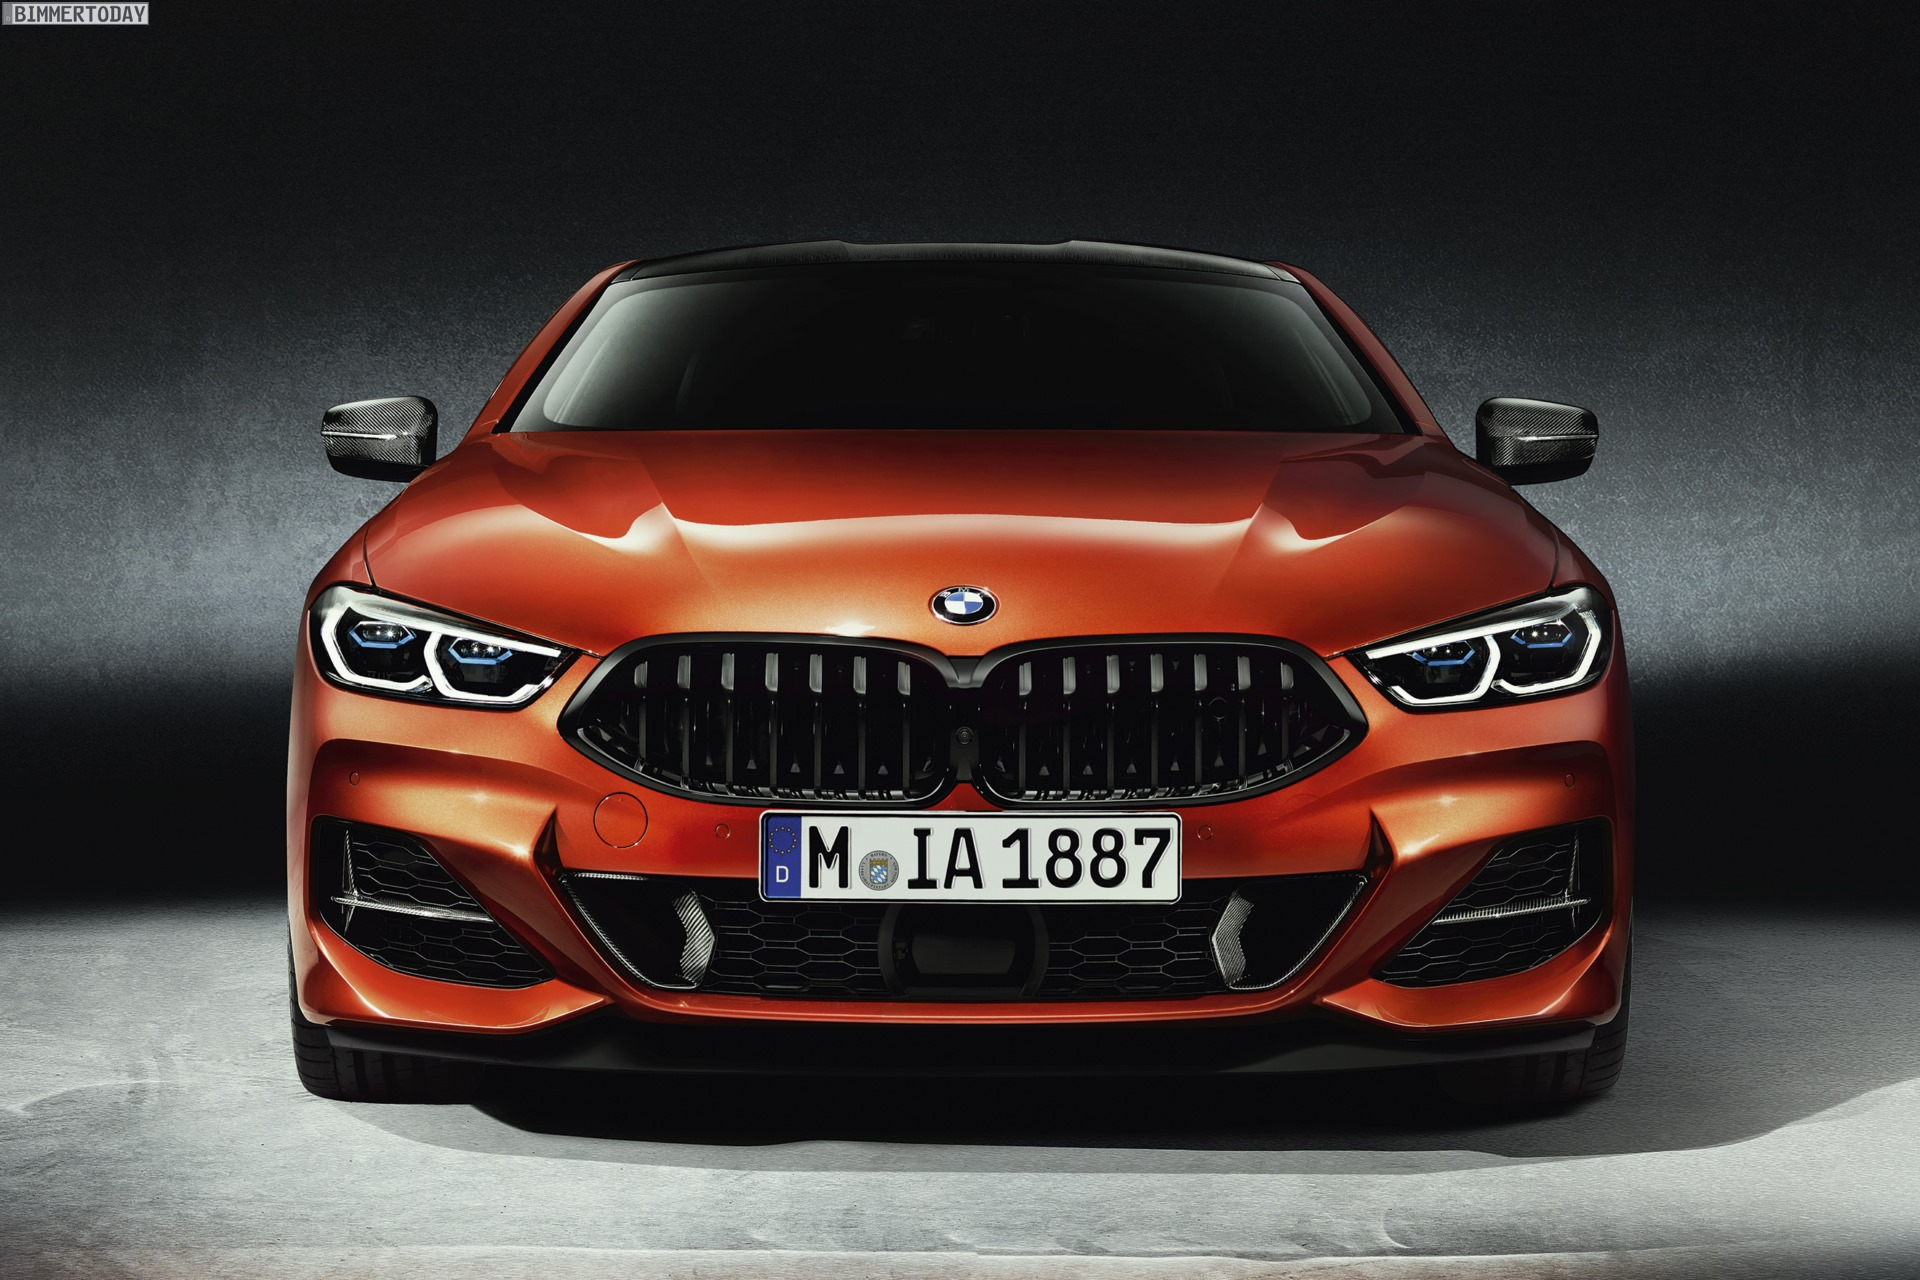 Extrascharf Bmw M850i G15 Mit Carbon Paket In Sunset Orange